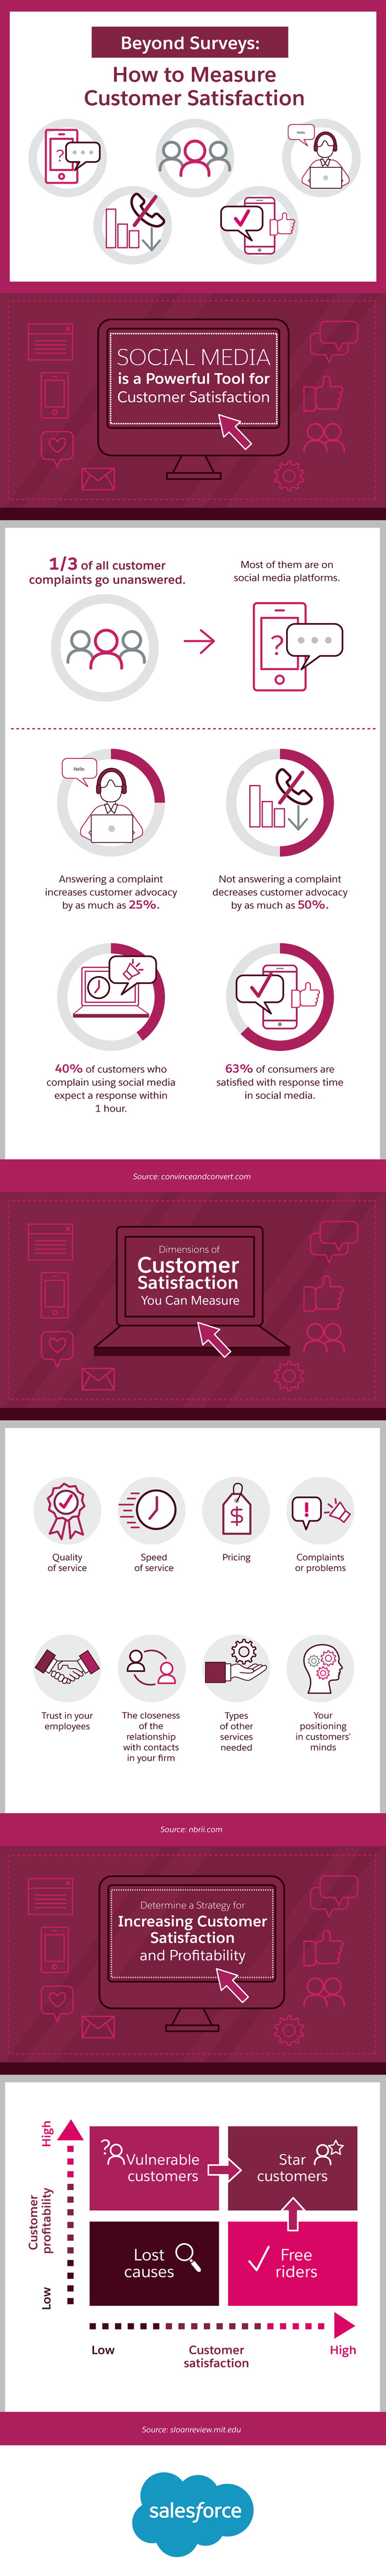 Beyond Surveys How to Measure Customer Satisfaction Infographic.